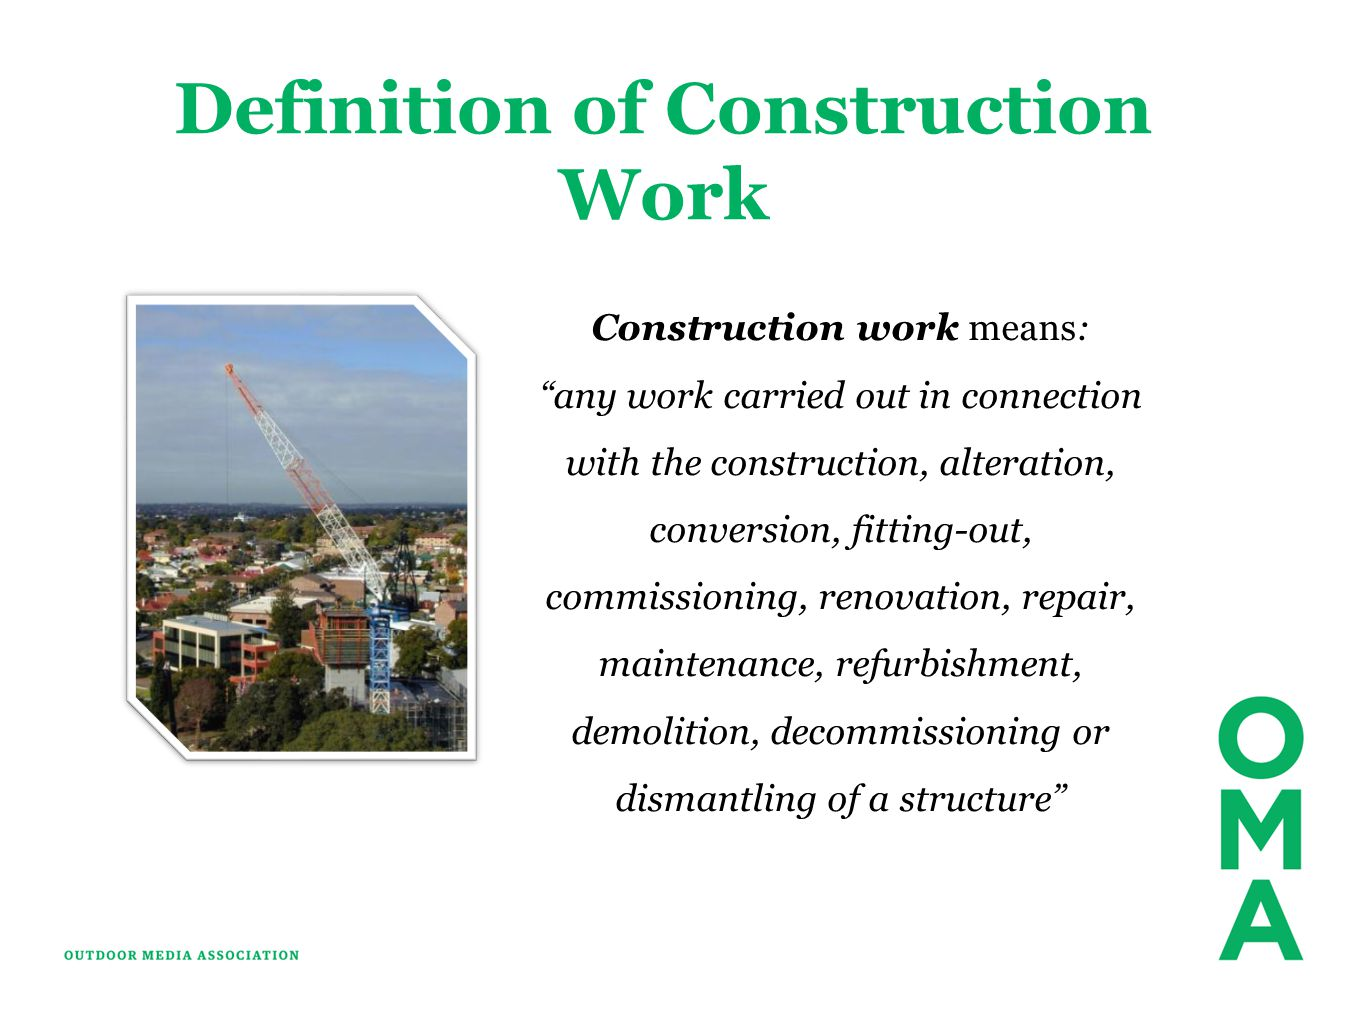 Definition of Construction Work